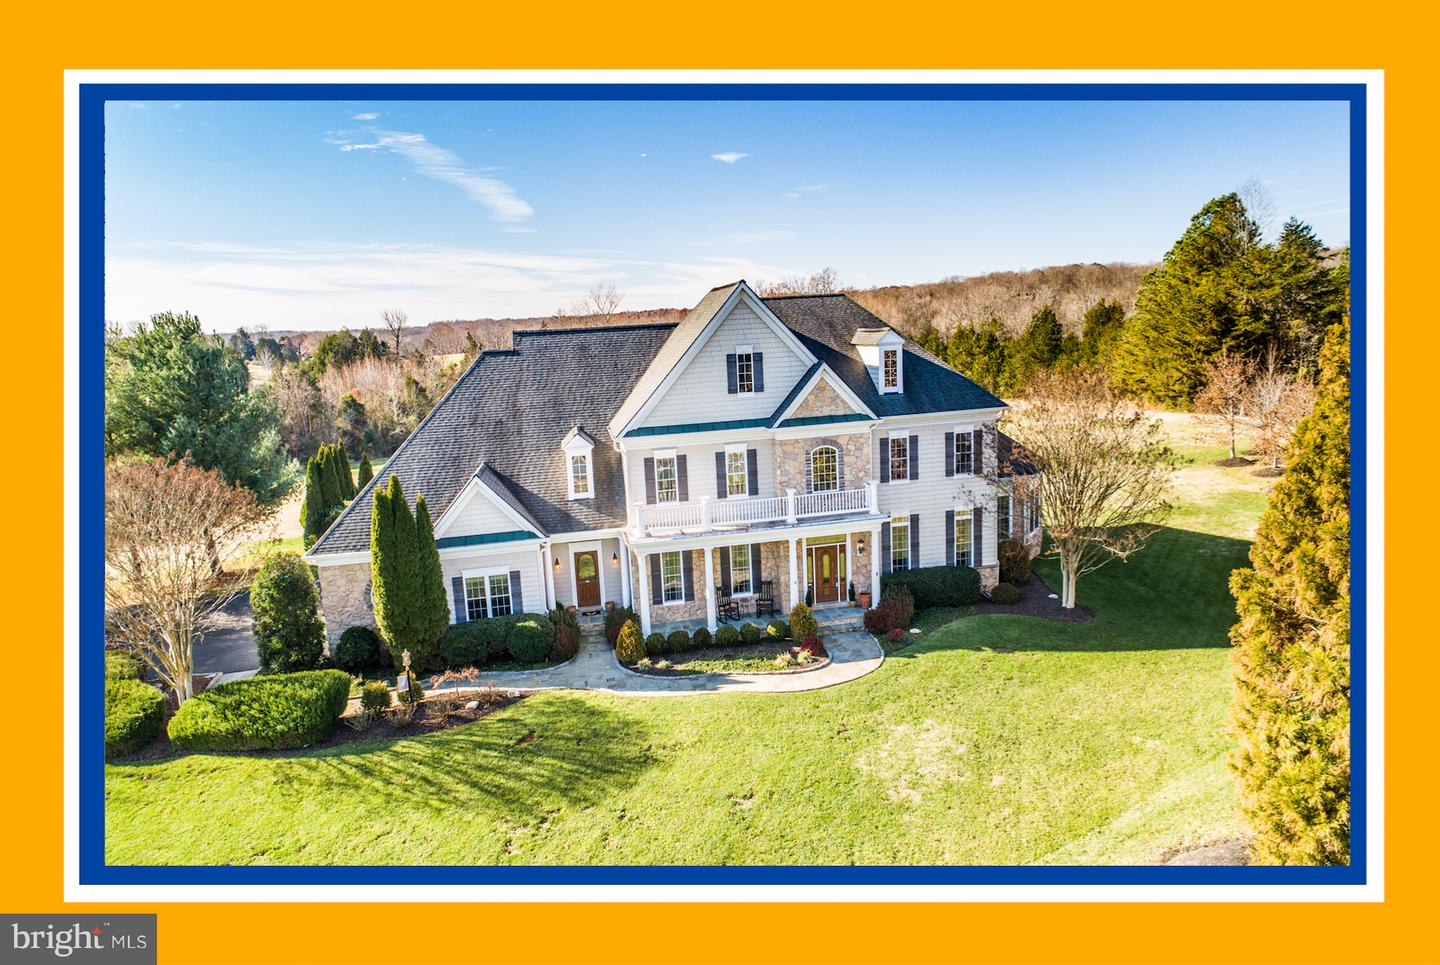 Single Family for Sale at 10 Stefaniga Farms Dr 10 Stefaniga Farms Dr Stafford, Virginia 22556 United States